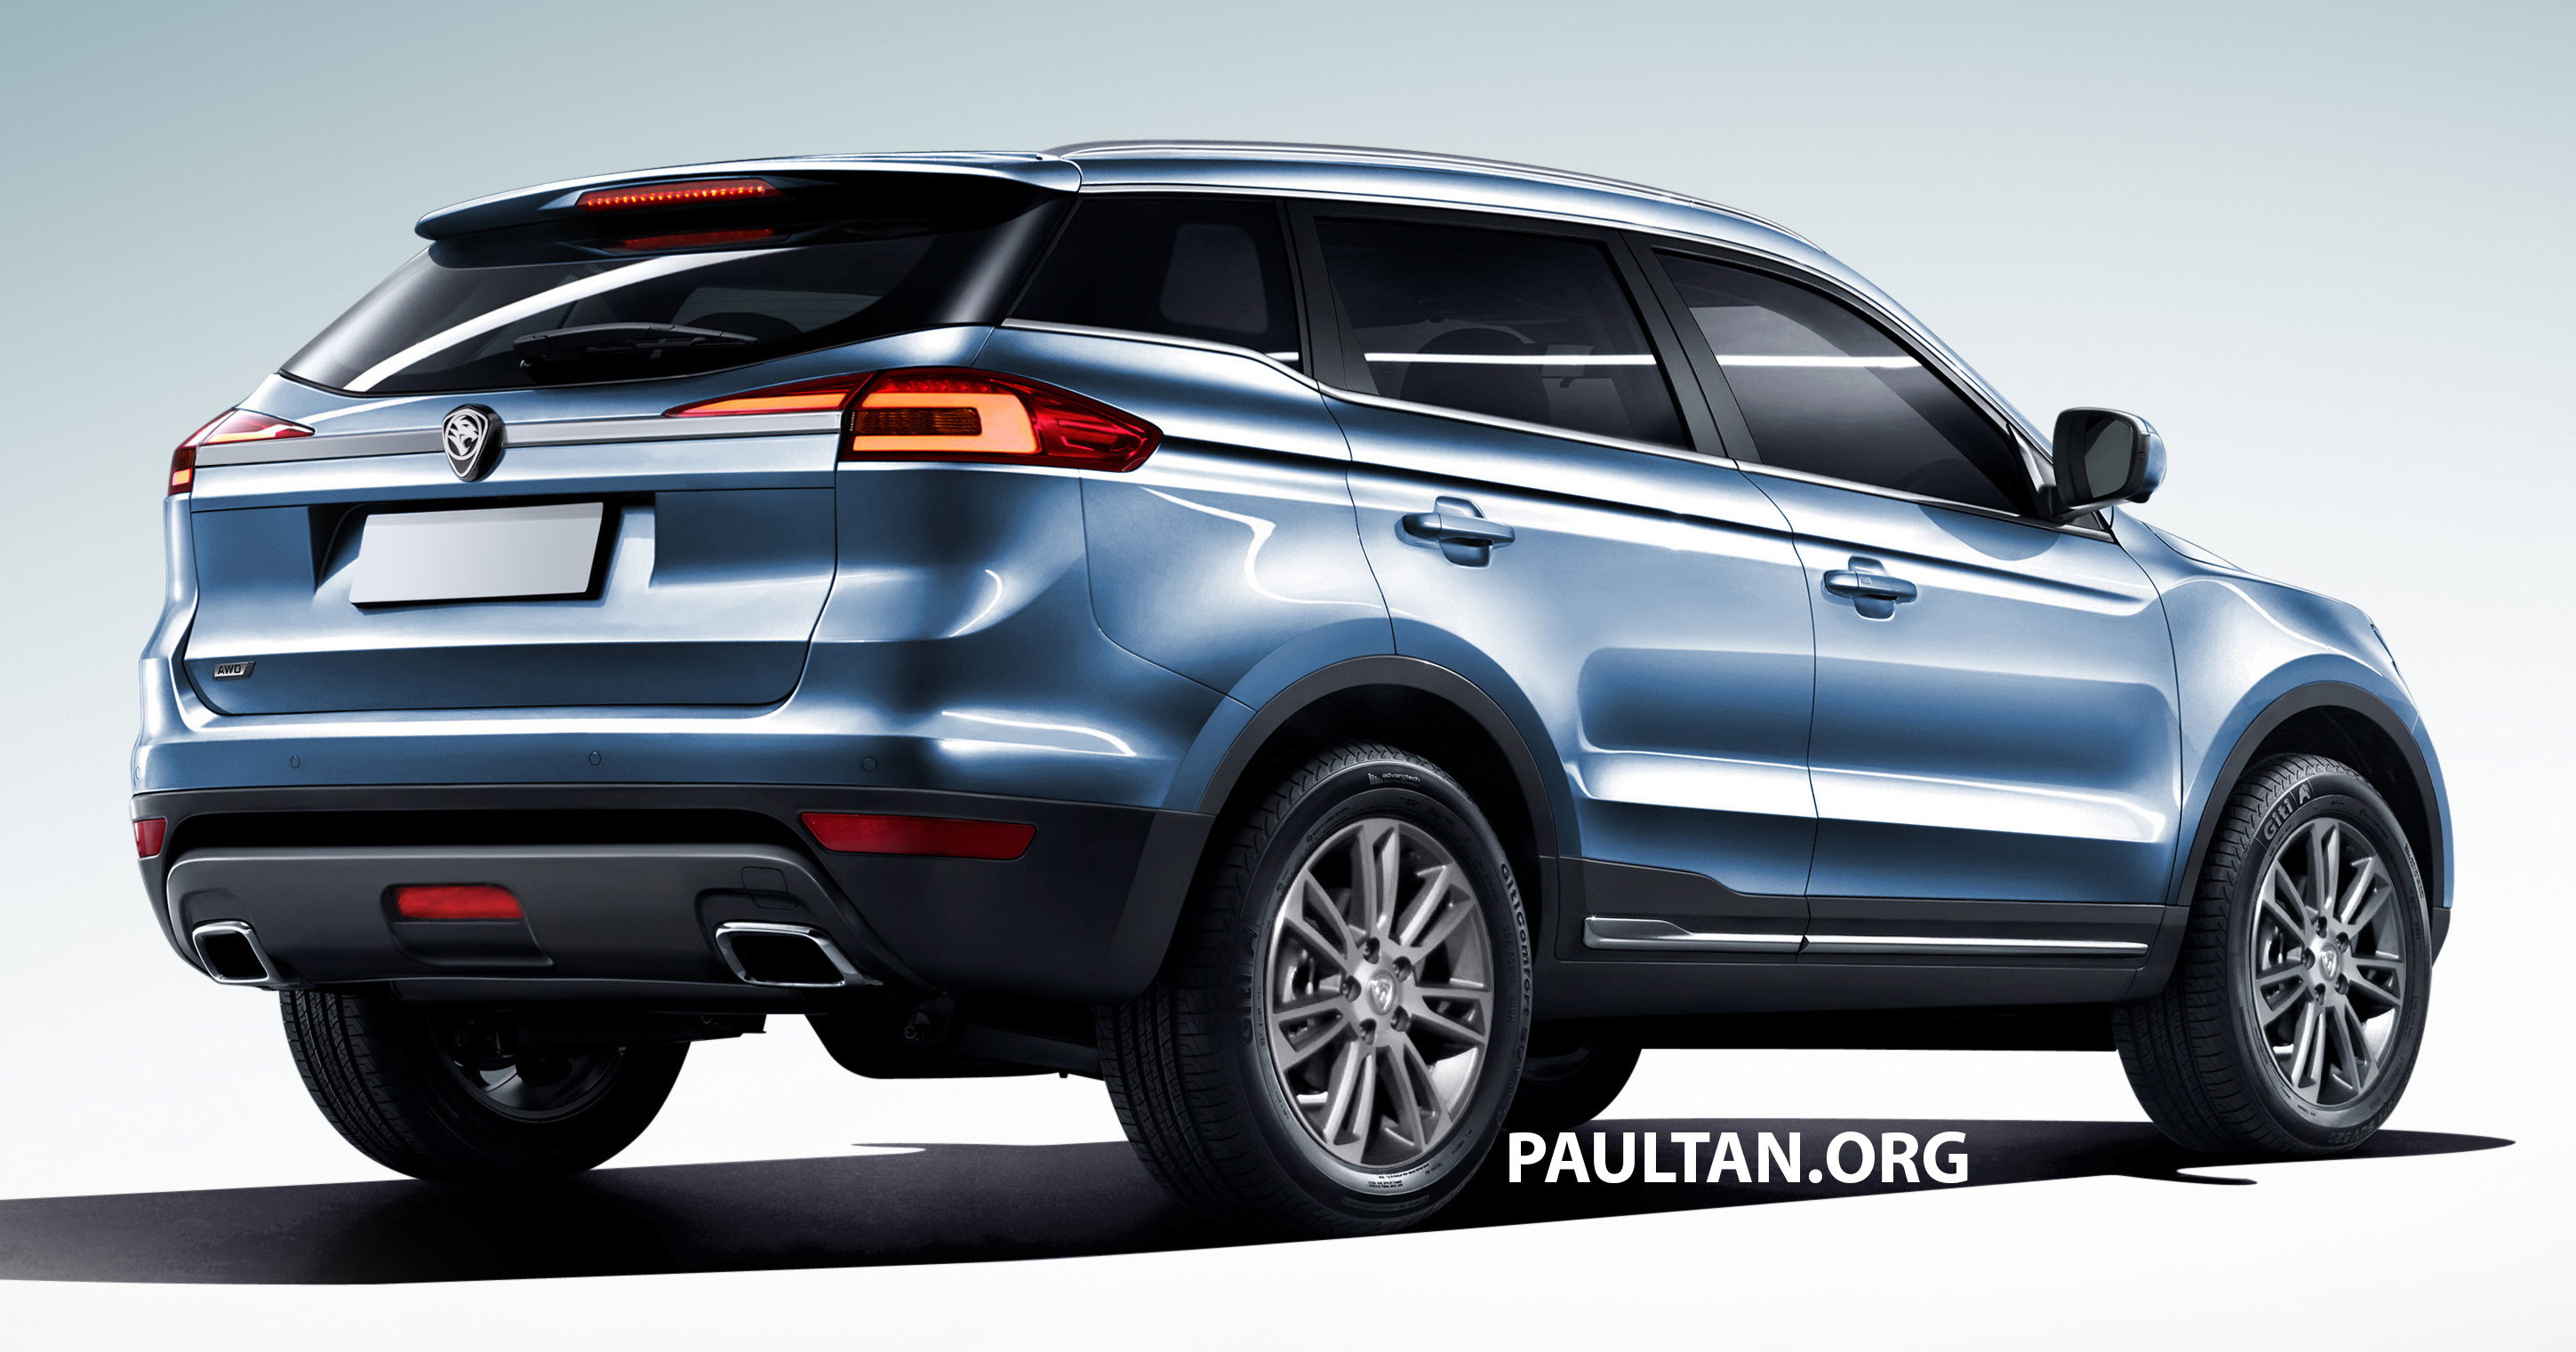 Proton Suv Gets Rendered Based On Geely Boyue